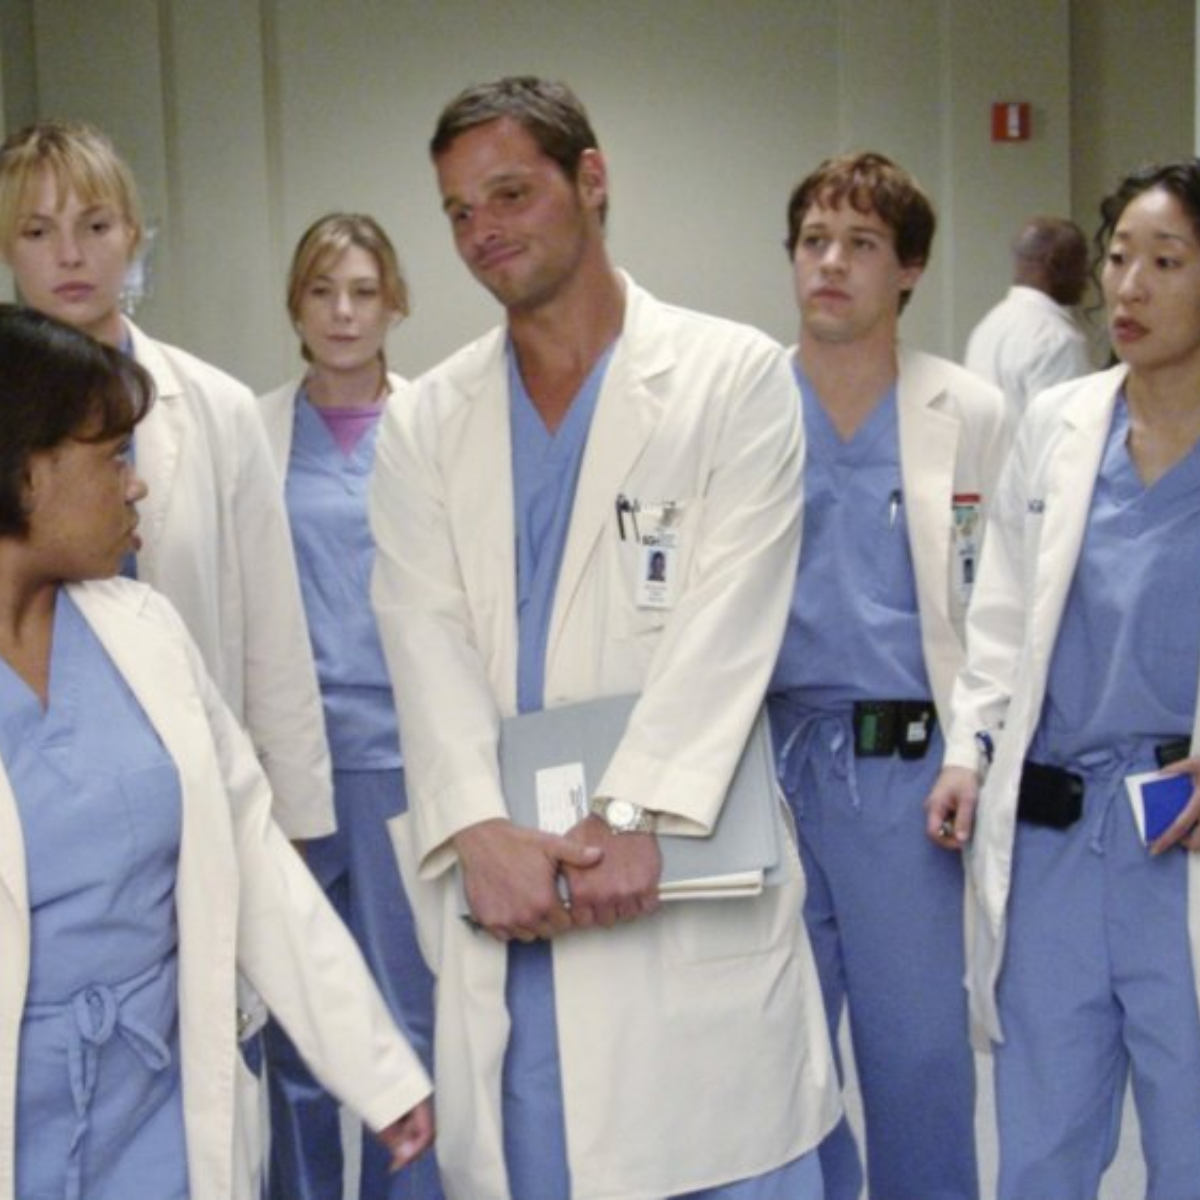 Are you an ardent fan of Grey's Anatomy? Check out THESE top 5 moments from the drama show's seasons 1 to 5